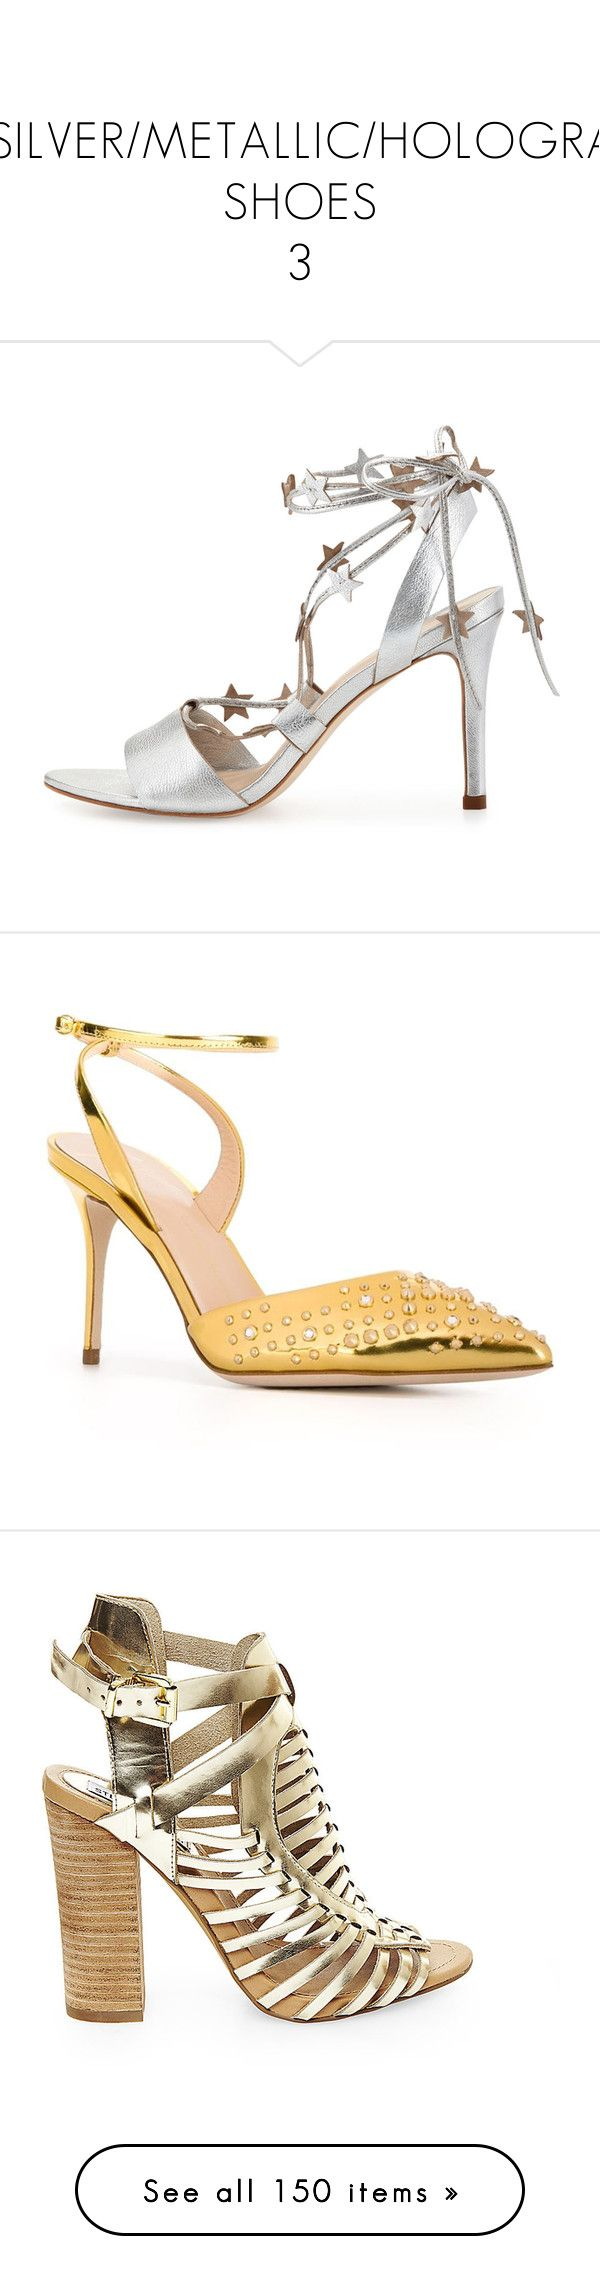 """GOLD/SILVER/METALLIC/HOLOGRAPHIC SHOES 3"" by kazza-smith ❤ liked on Polyvore featuring shoes, sandals, silver shoes, silver strappy shoes, silver strappy sandals, loeffler randall shoes, silver strap sandals, pumps, studded shoes and ankle strap pumps"